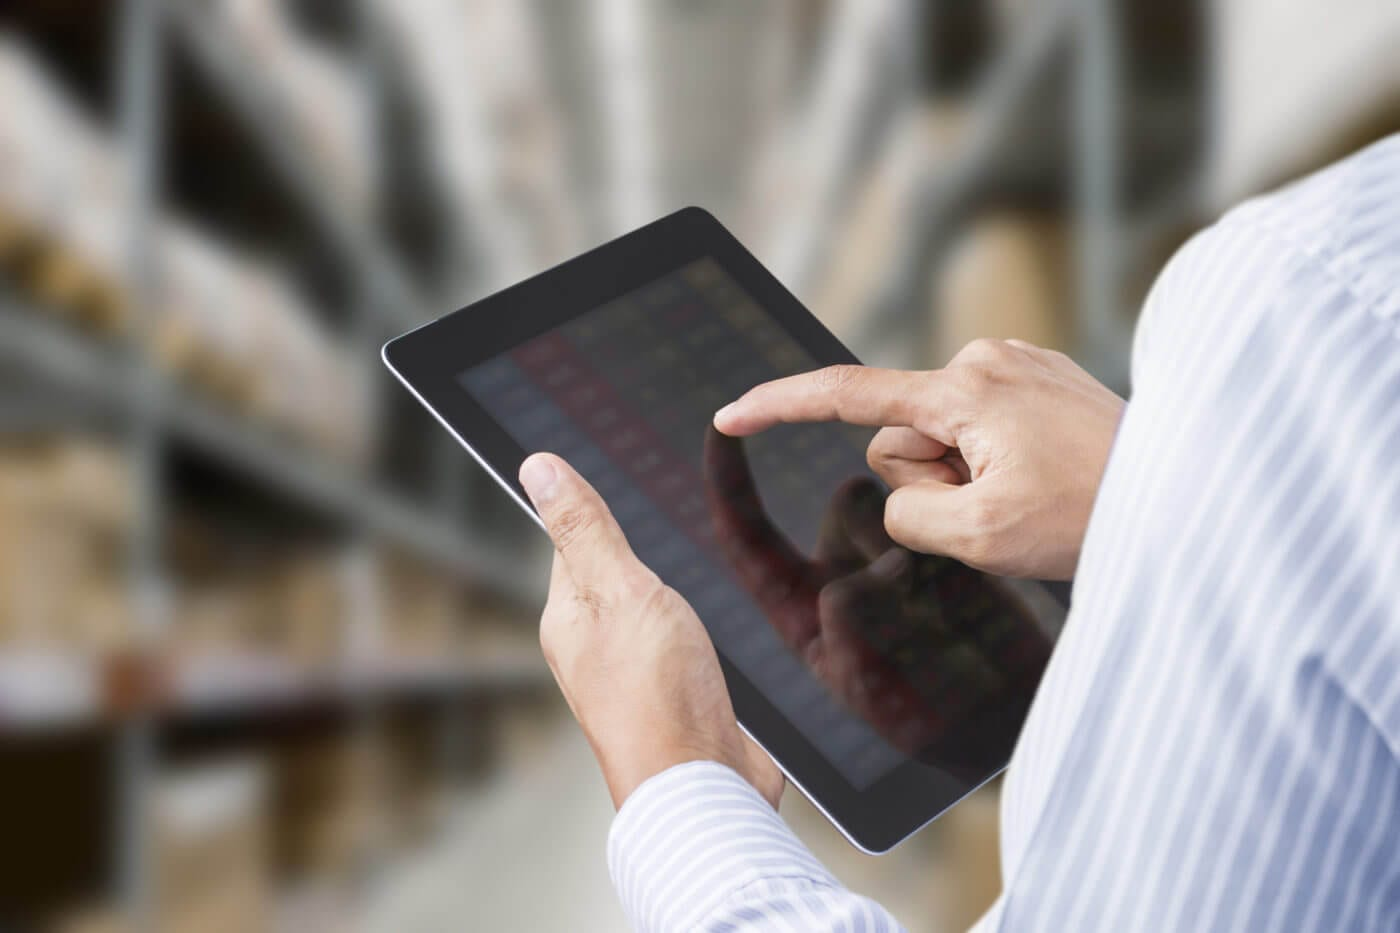 Warehousing with Vendor Managed Inventories